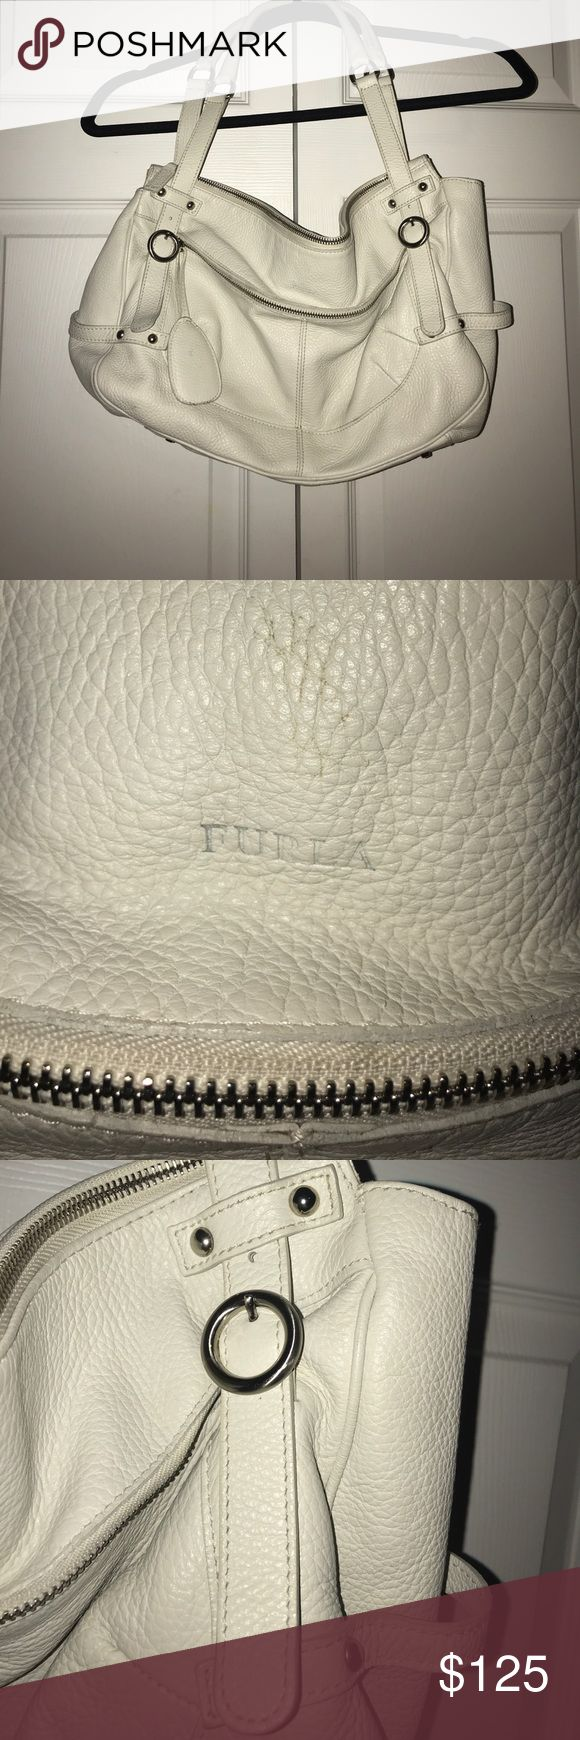 Furla purse Bone colored Furla purse with Silver embellishments. Beautiful bag in great condition. Spot inside bag, picture posted. Furla Bags Totes